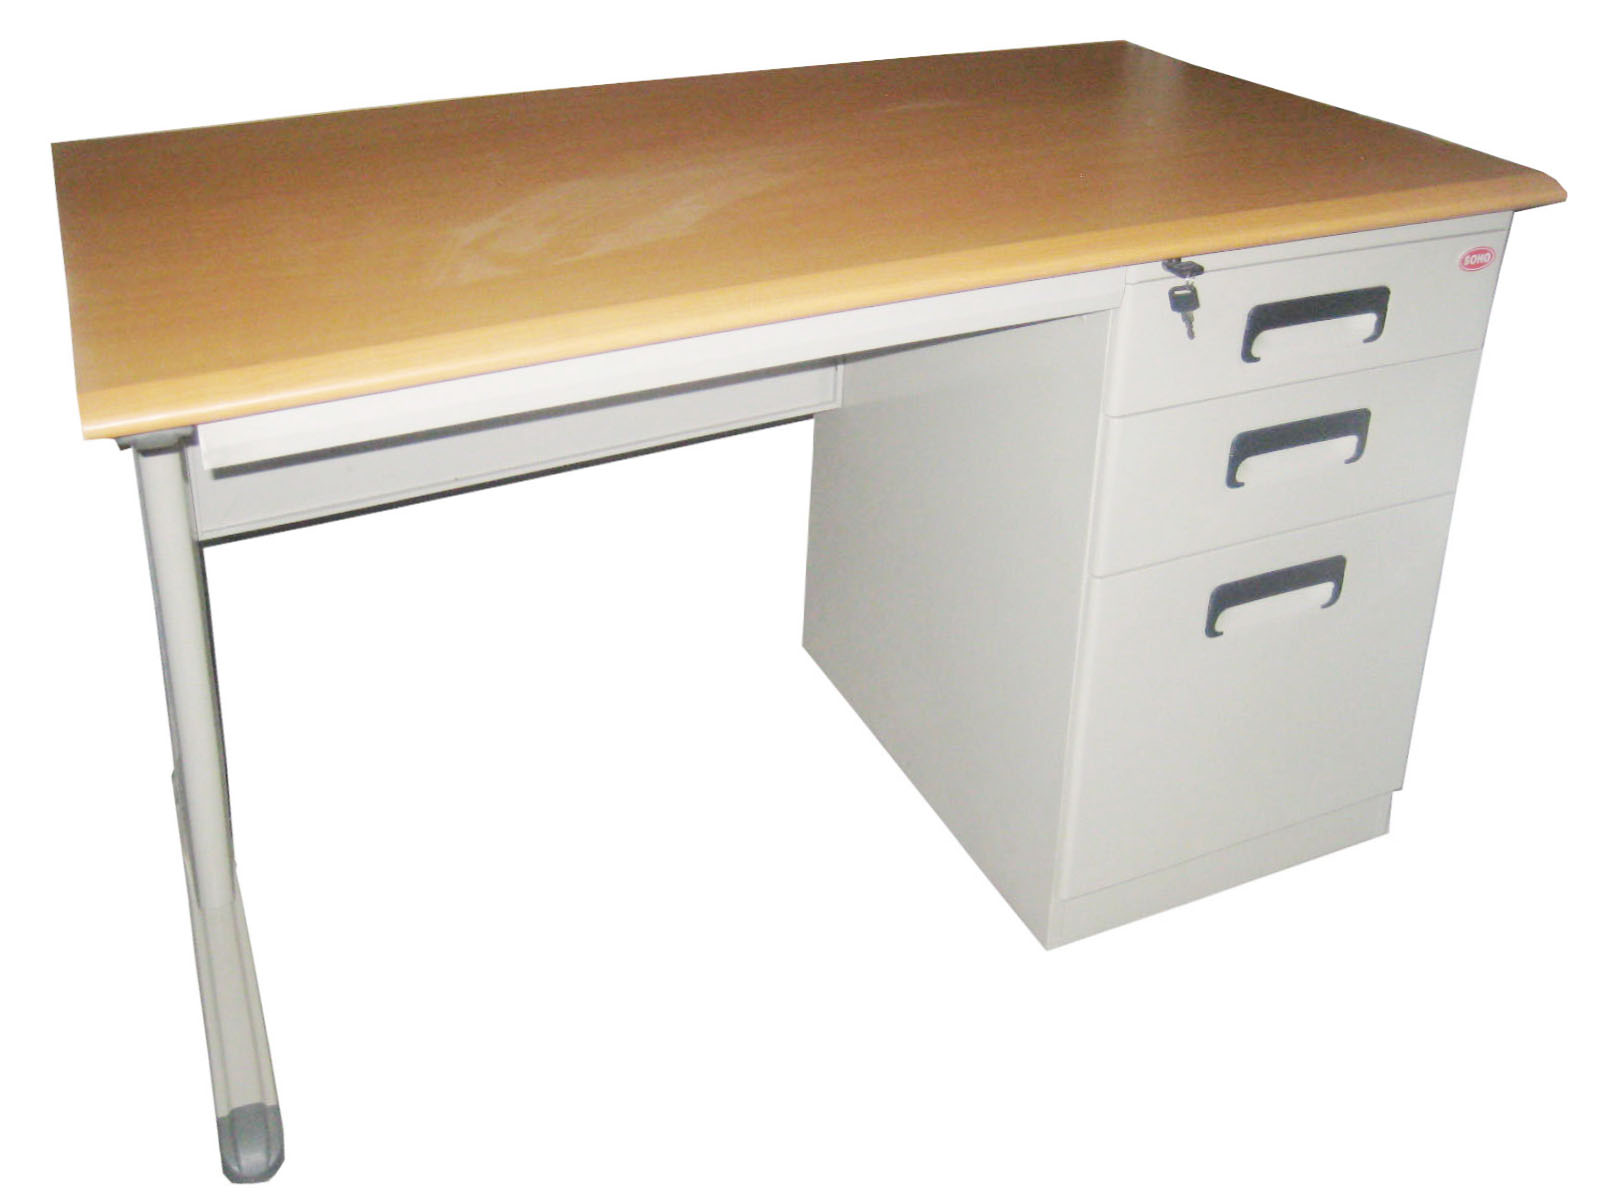 Soho Finland Office Desk Steel Frame Laminated Top W 4 Drawer Colour Gray L120 W70 H75 Cm